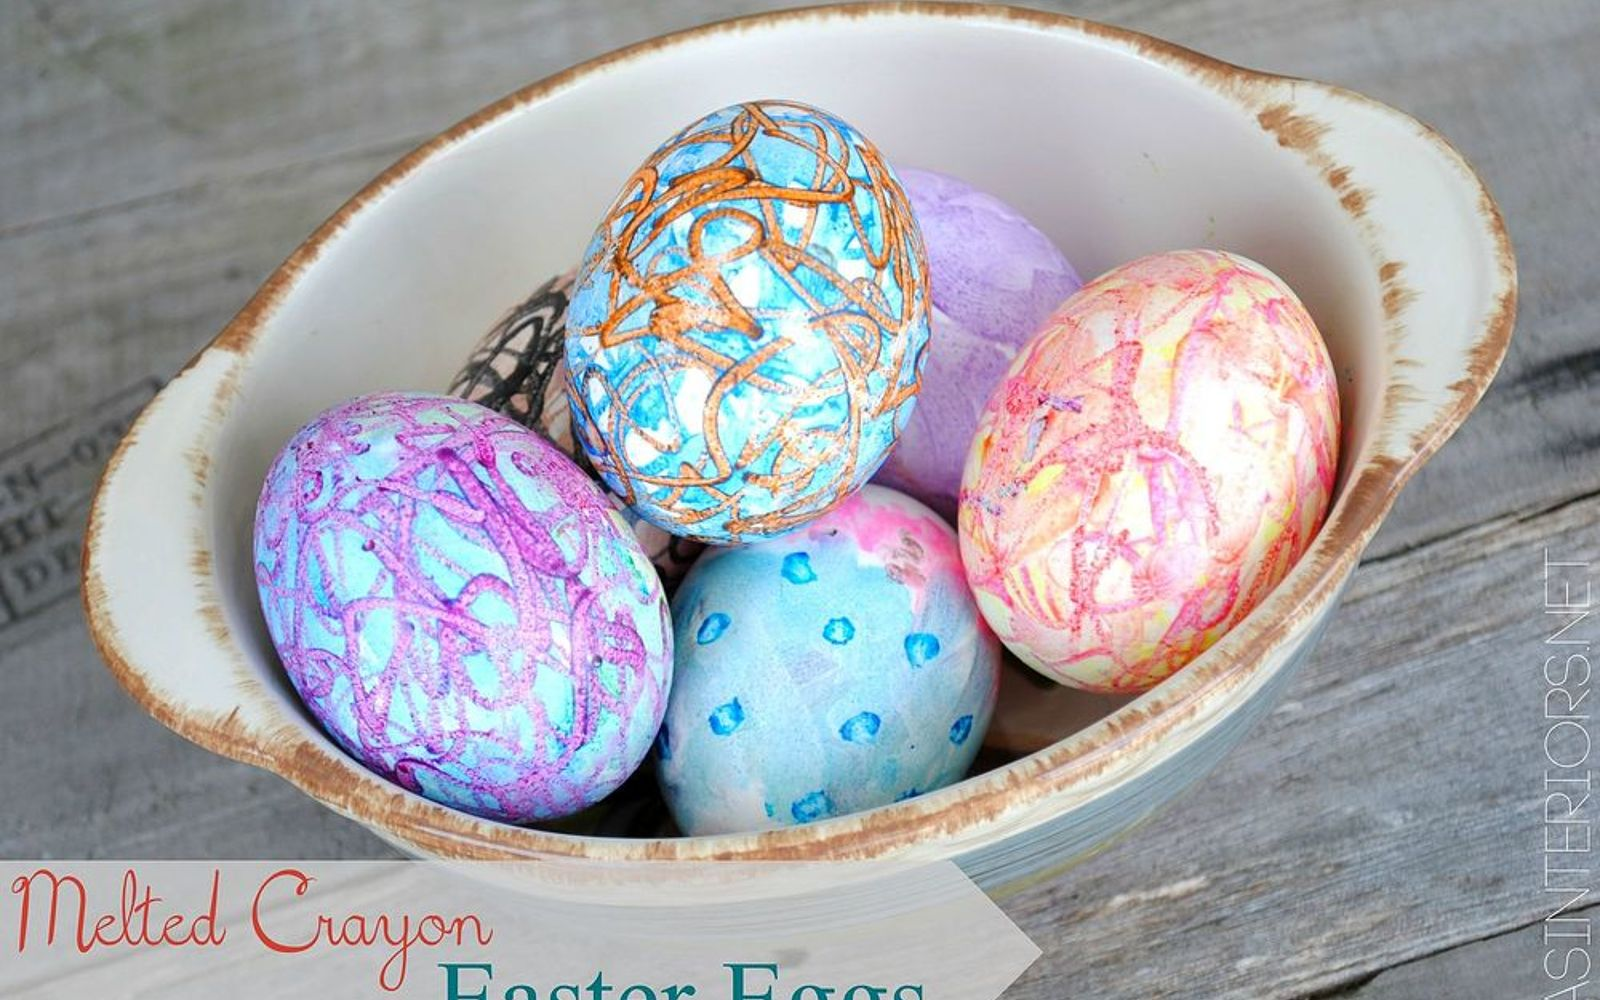 s 23 totally different ways to decorate real eggs this easter, crafts, easter decorations, Draw straight on warm eggs with wax crayons